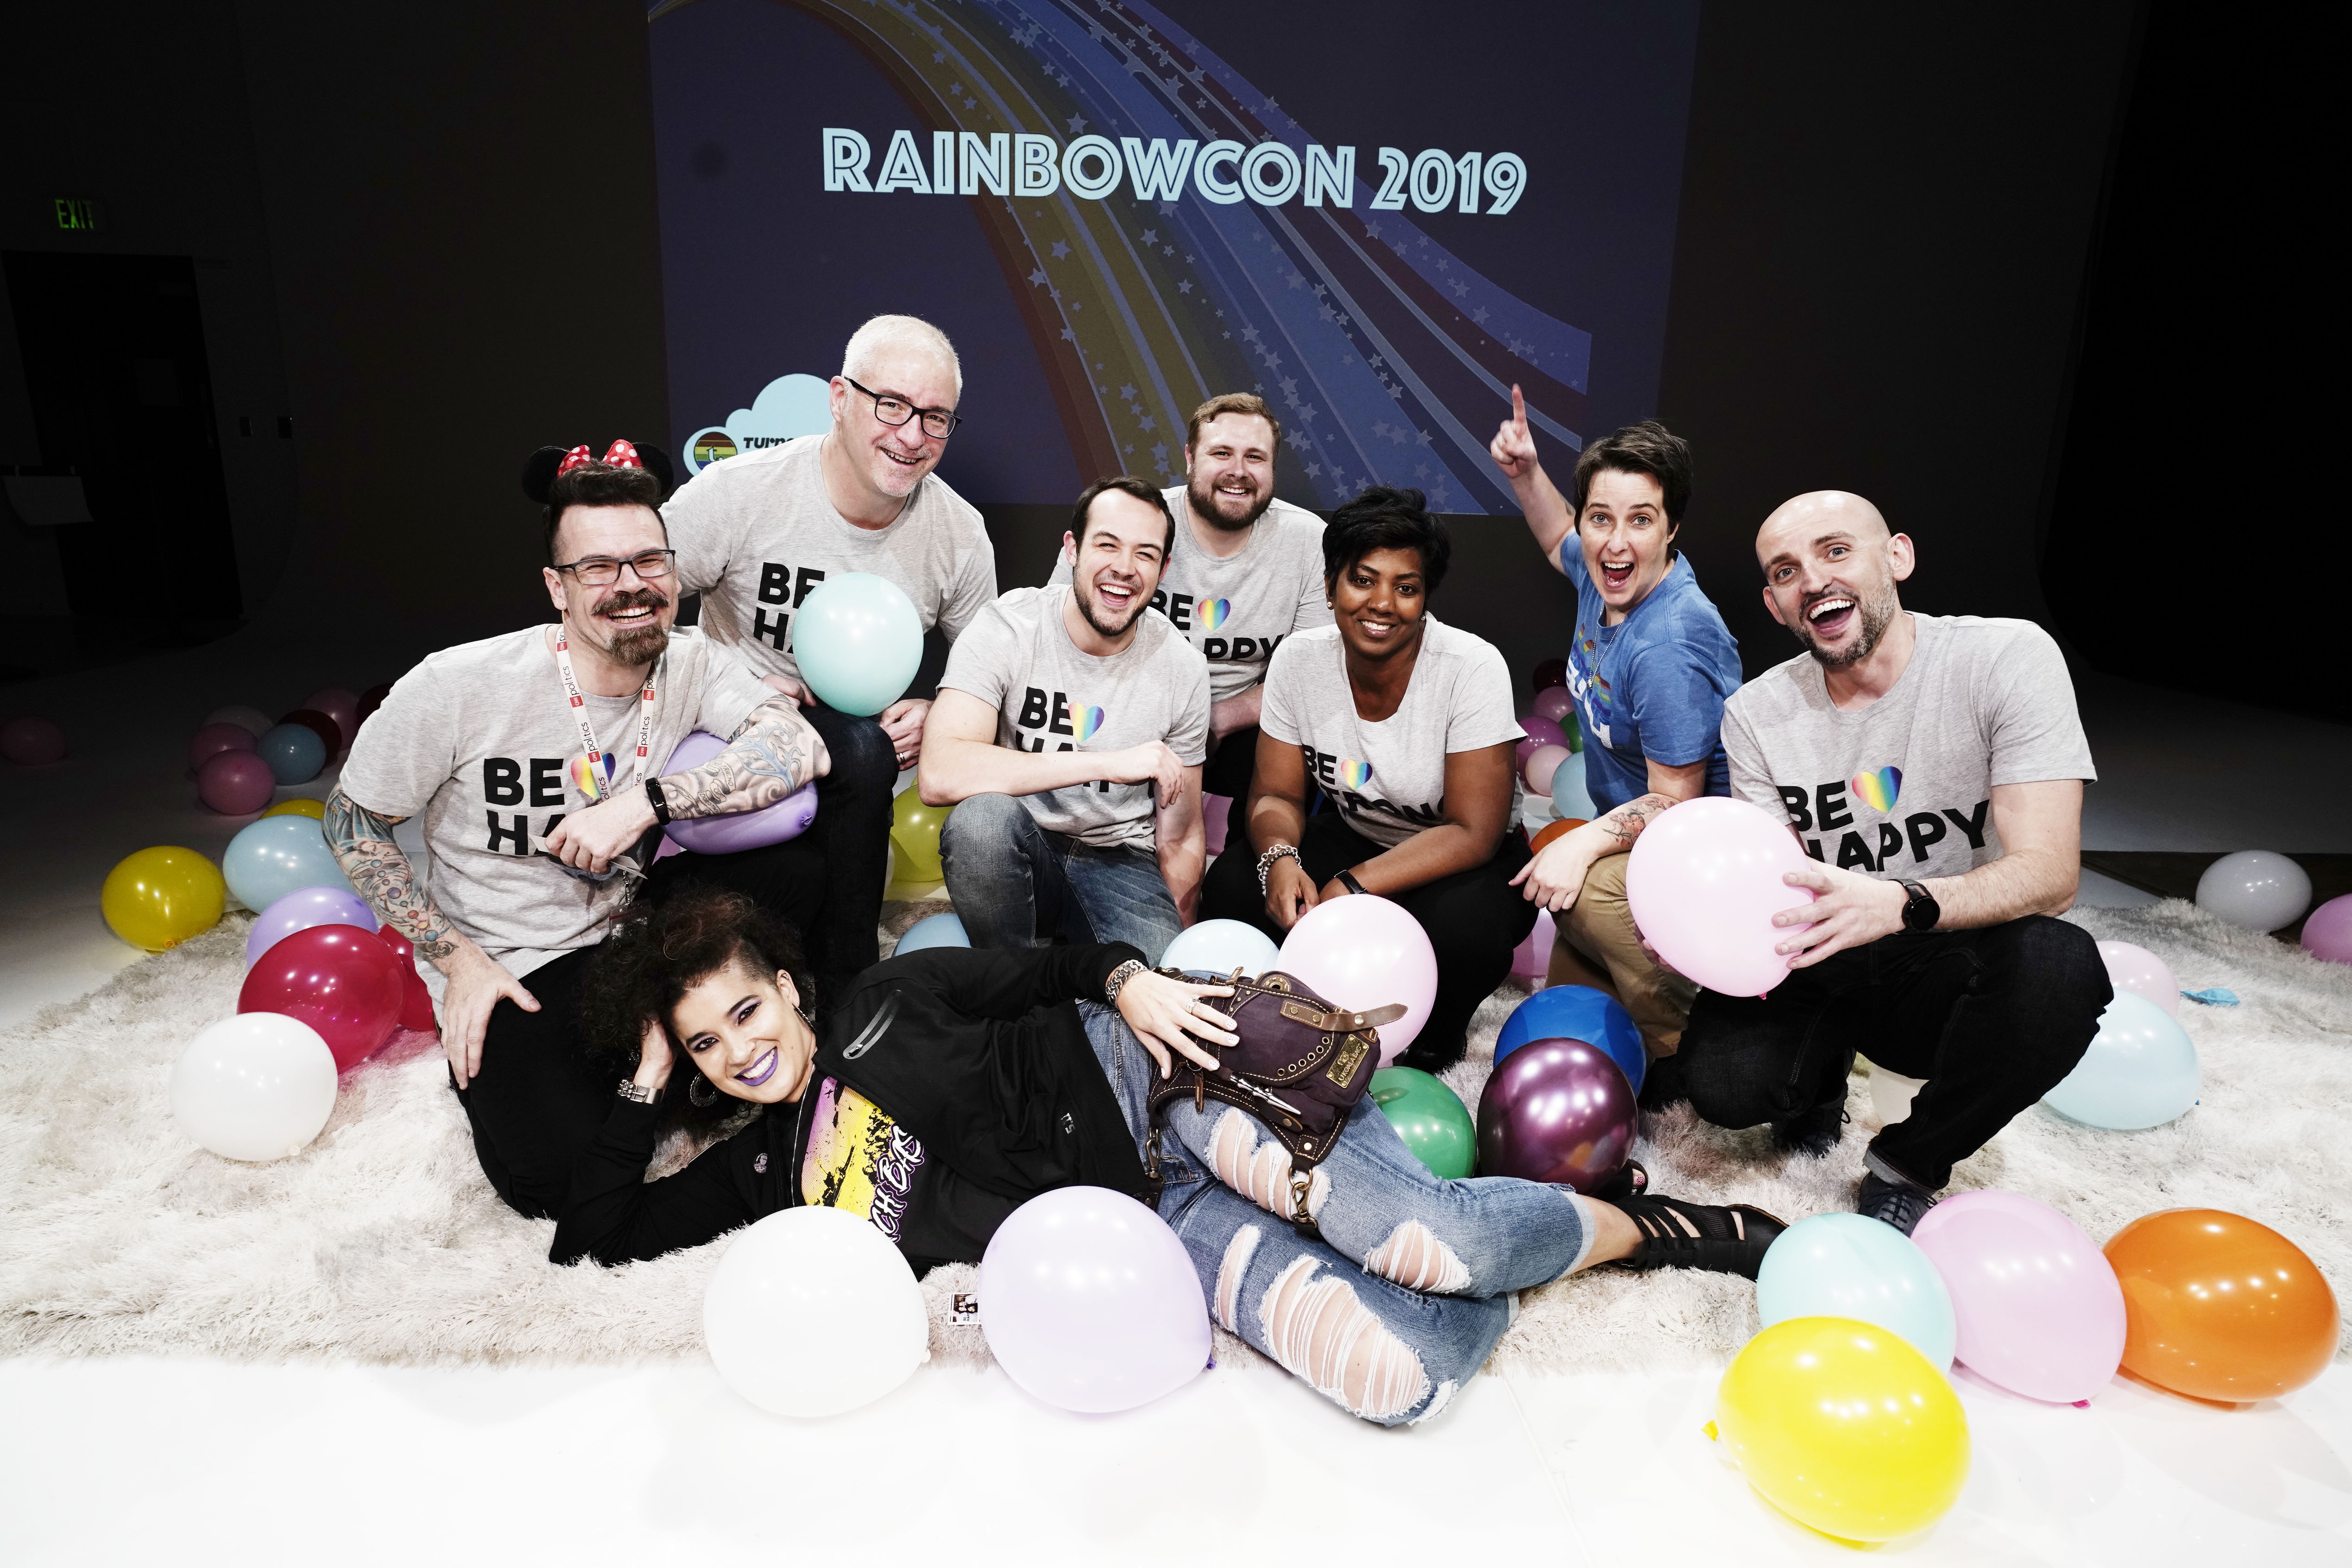 RainbowCon presented by TurnOut in Atlanta